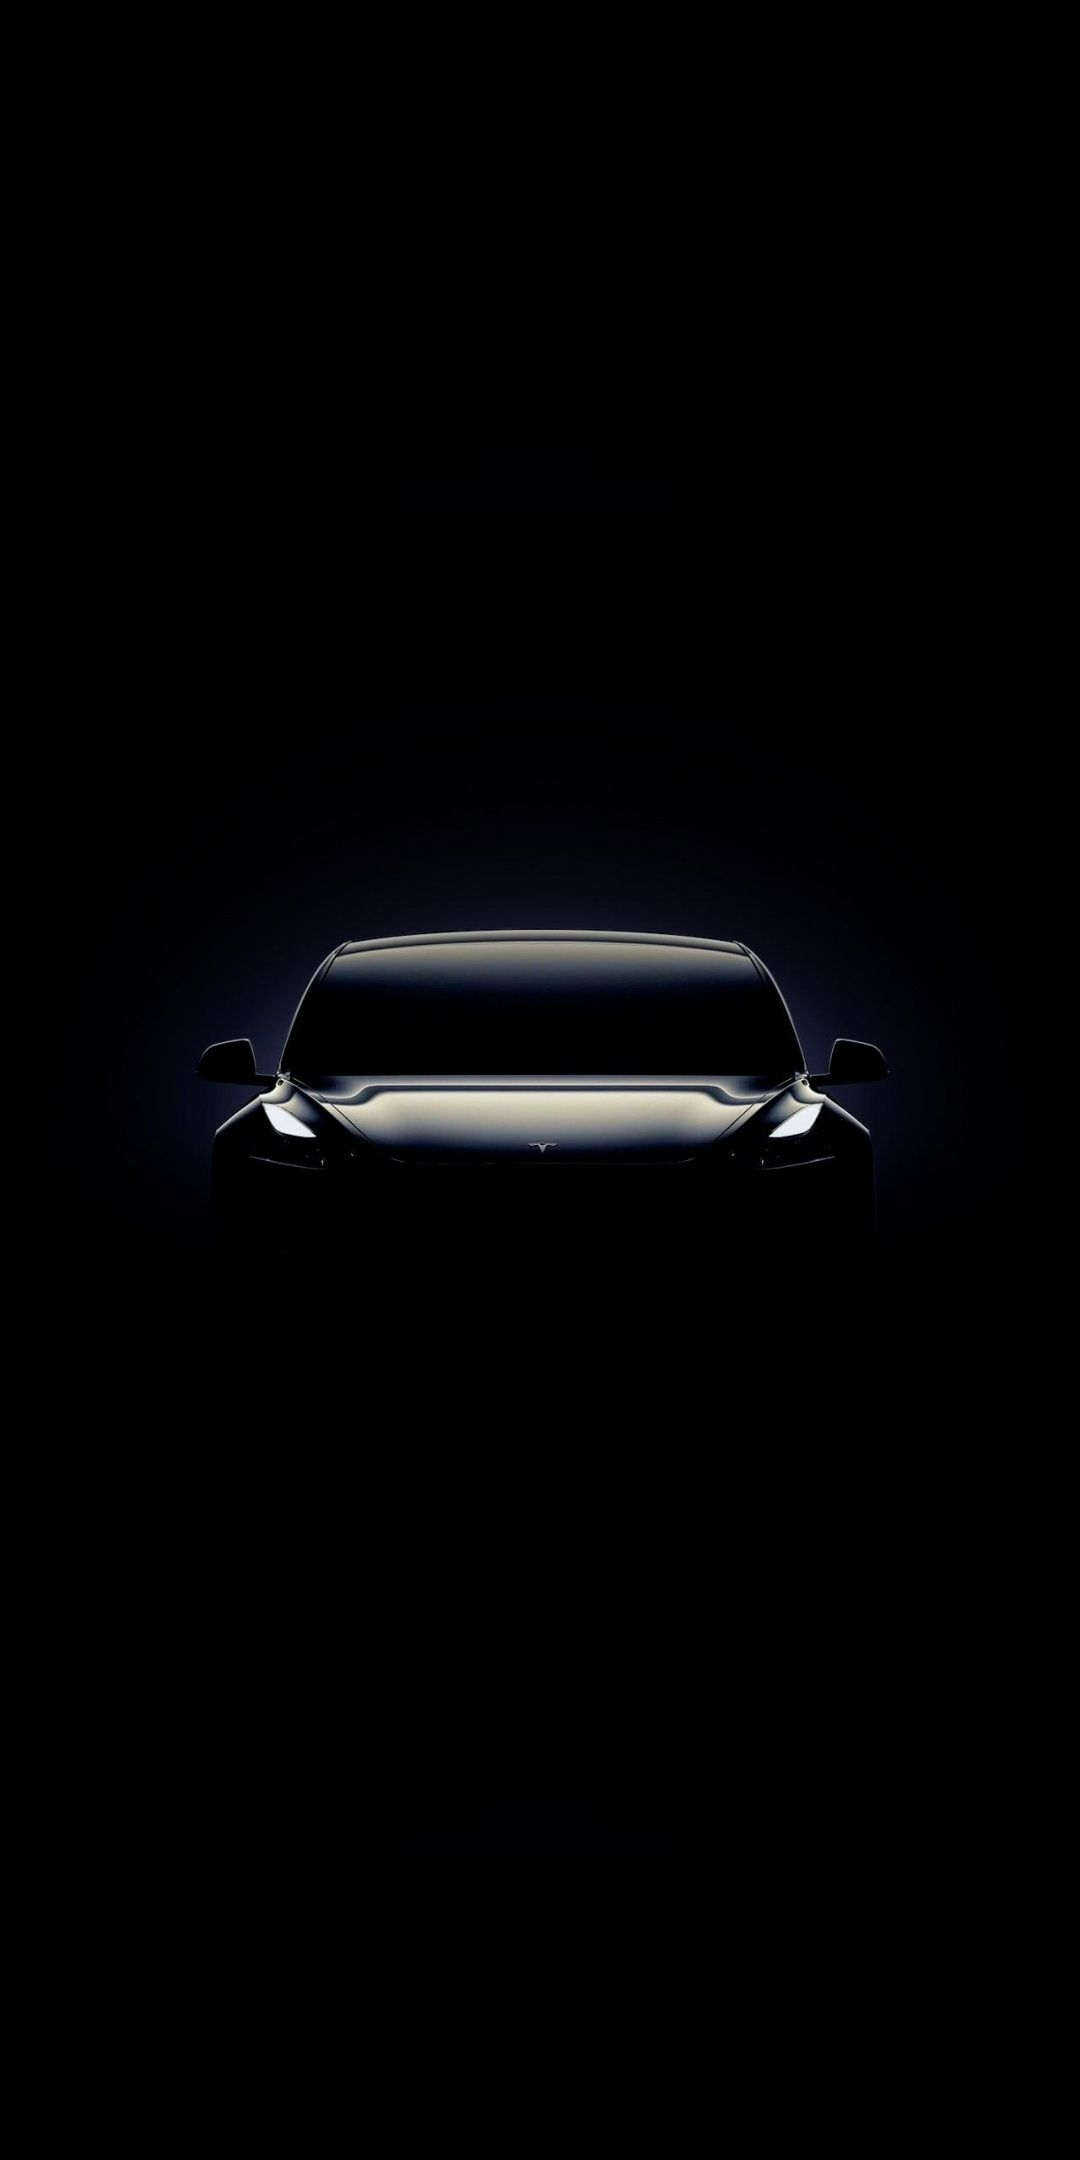 Tesla Model 3, portrait, 1080x2160 wallpaper Tesla model